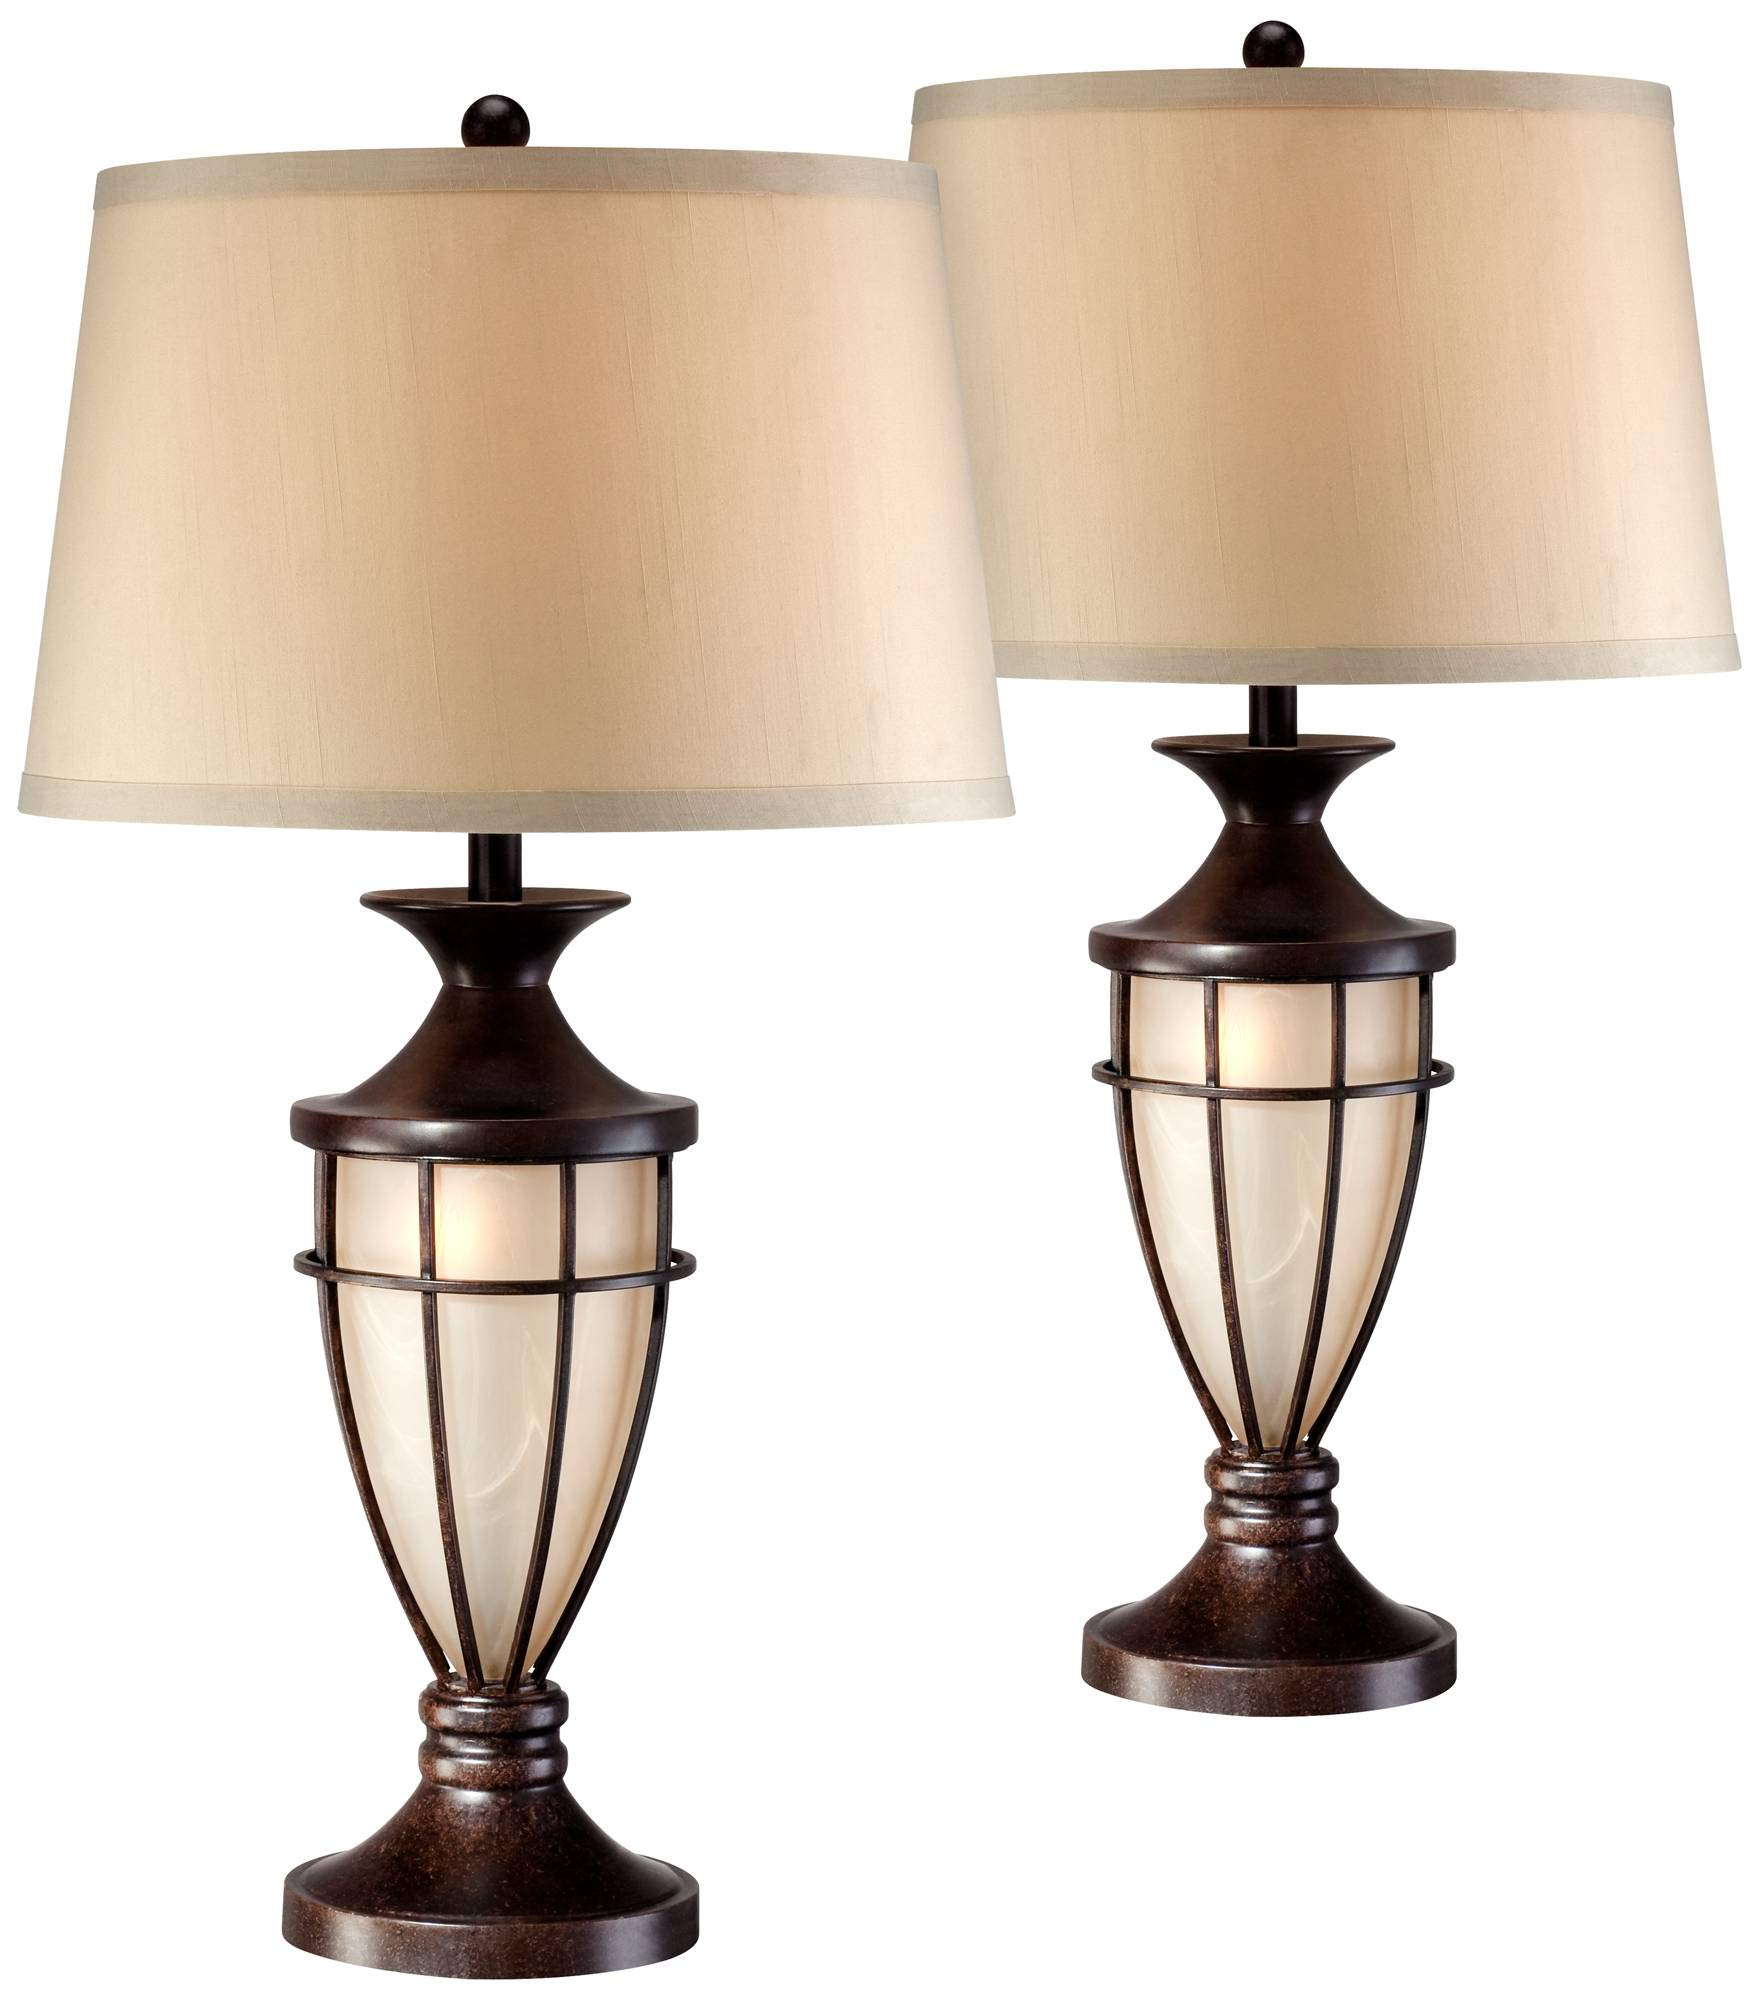 Traditional Table Lamps Set of 2 with Nightlight Lantern Brushed Iron Cage Beige Fabric Shade for Living Room - John Timberland